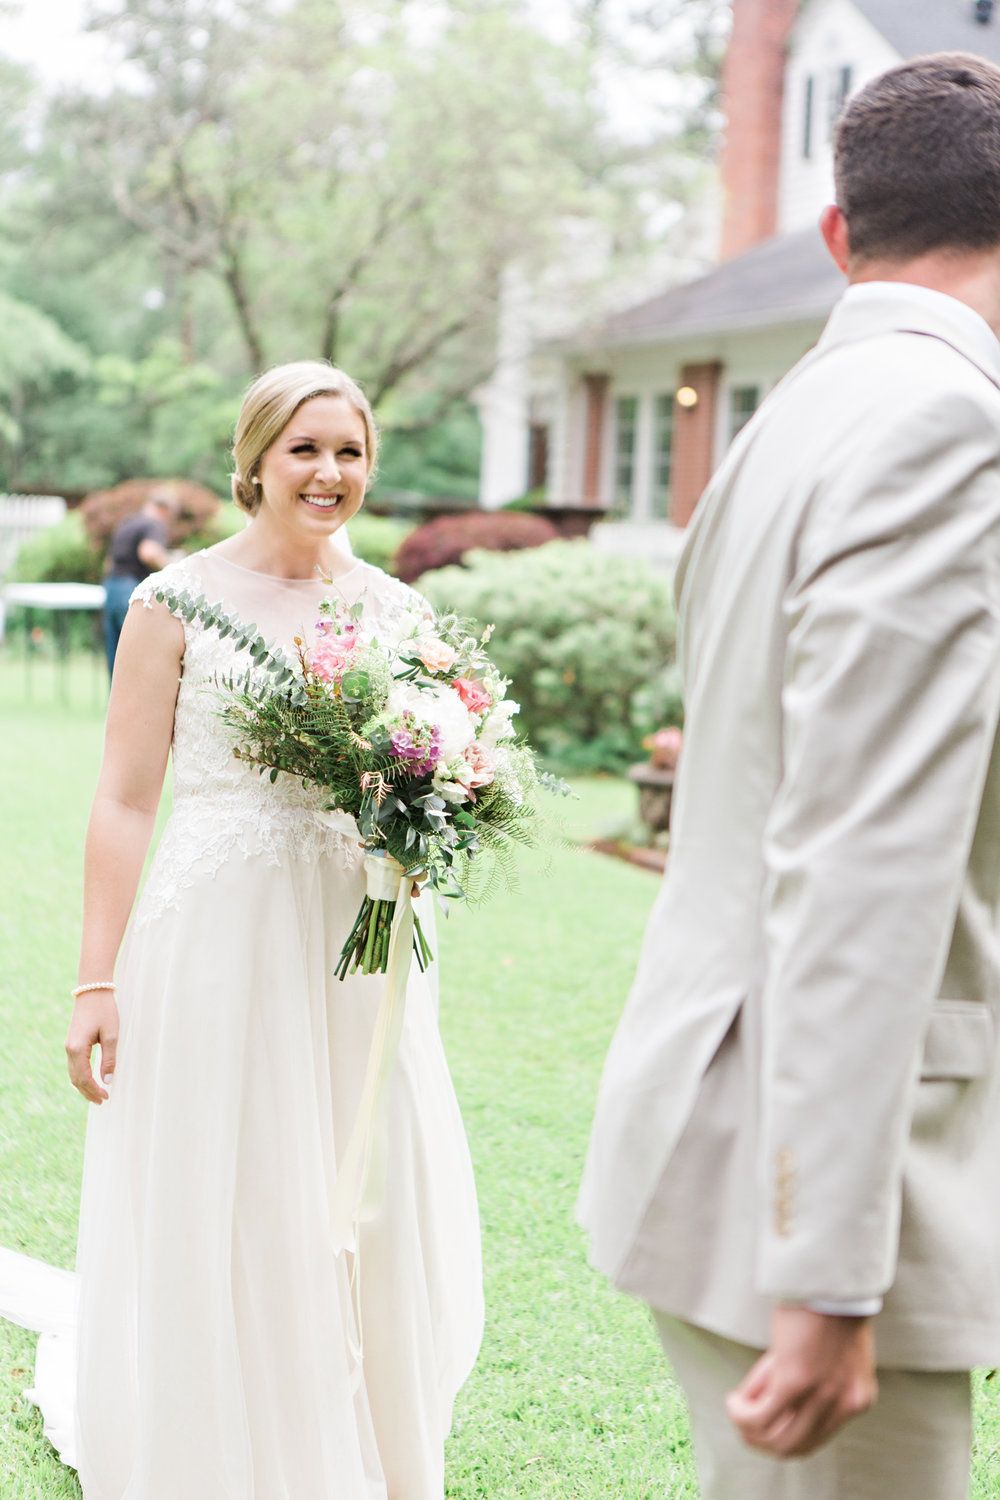 Matty-Drollette-Photography-Alabama-Weddings-Sara and Logan-118.jpg